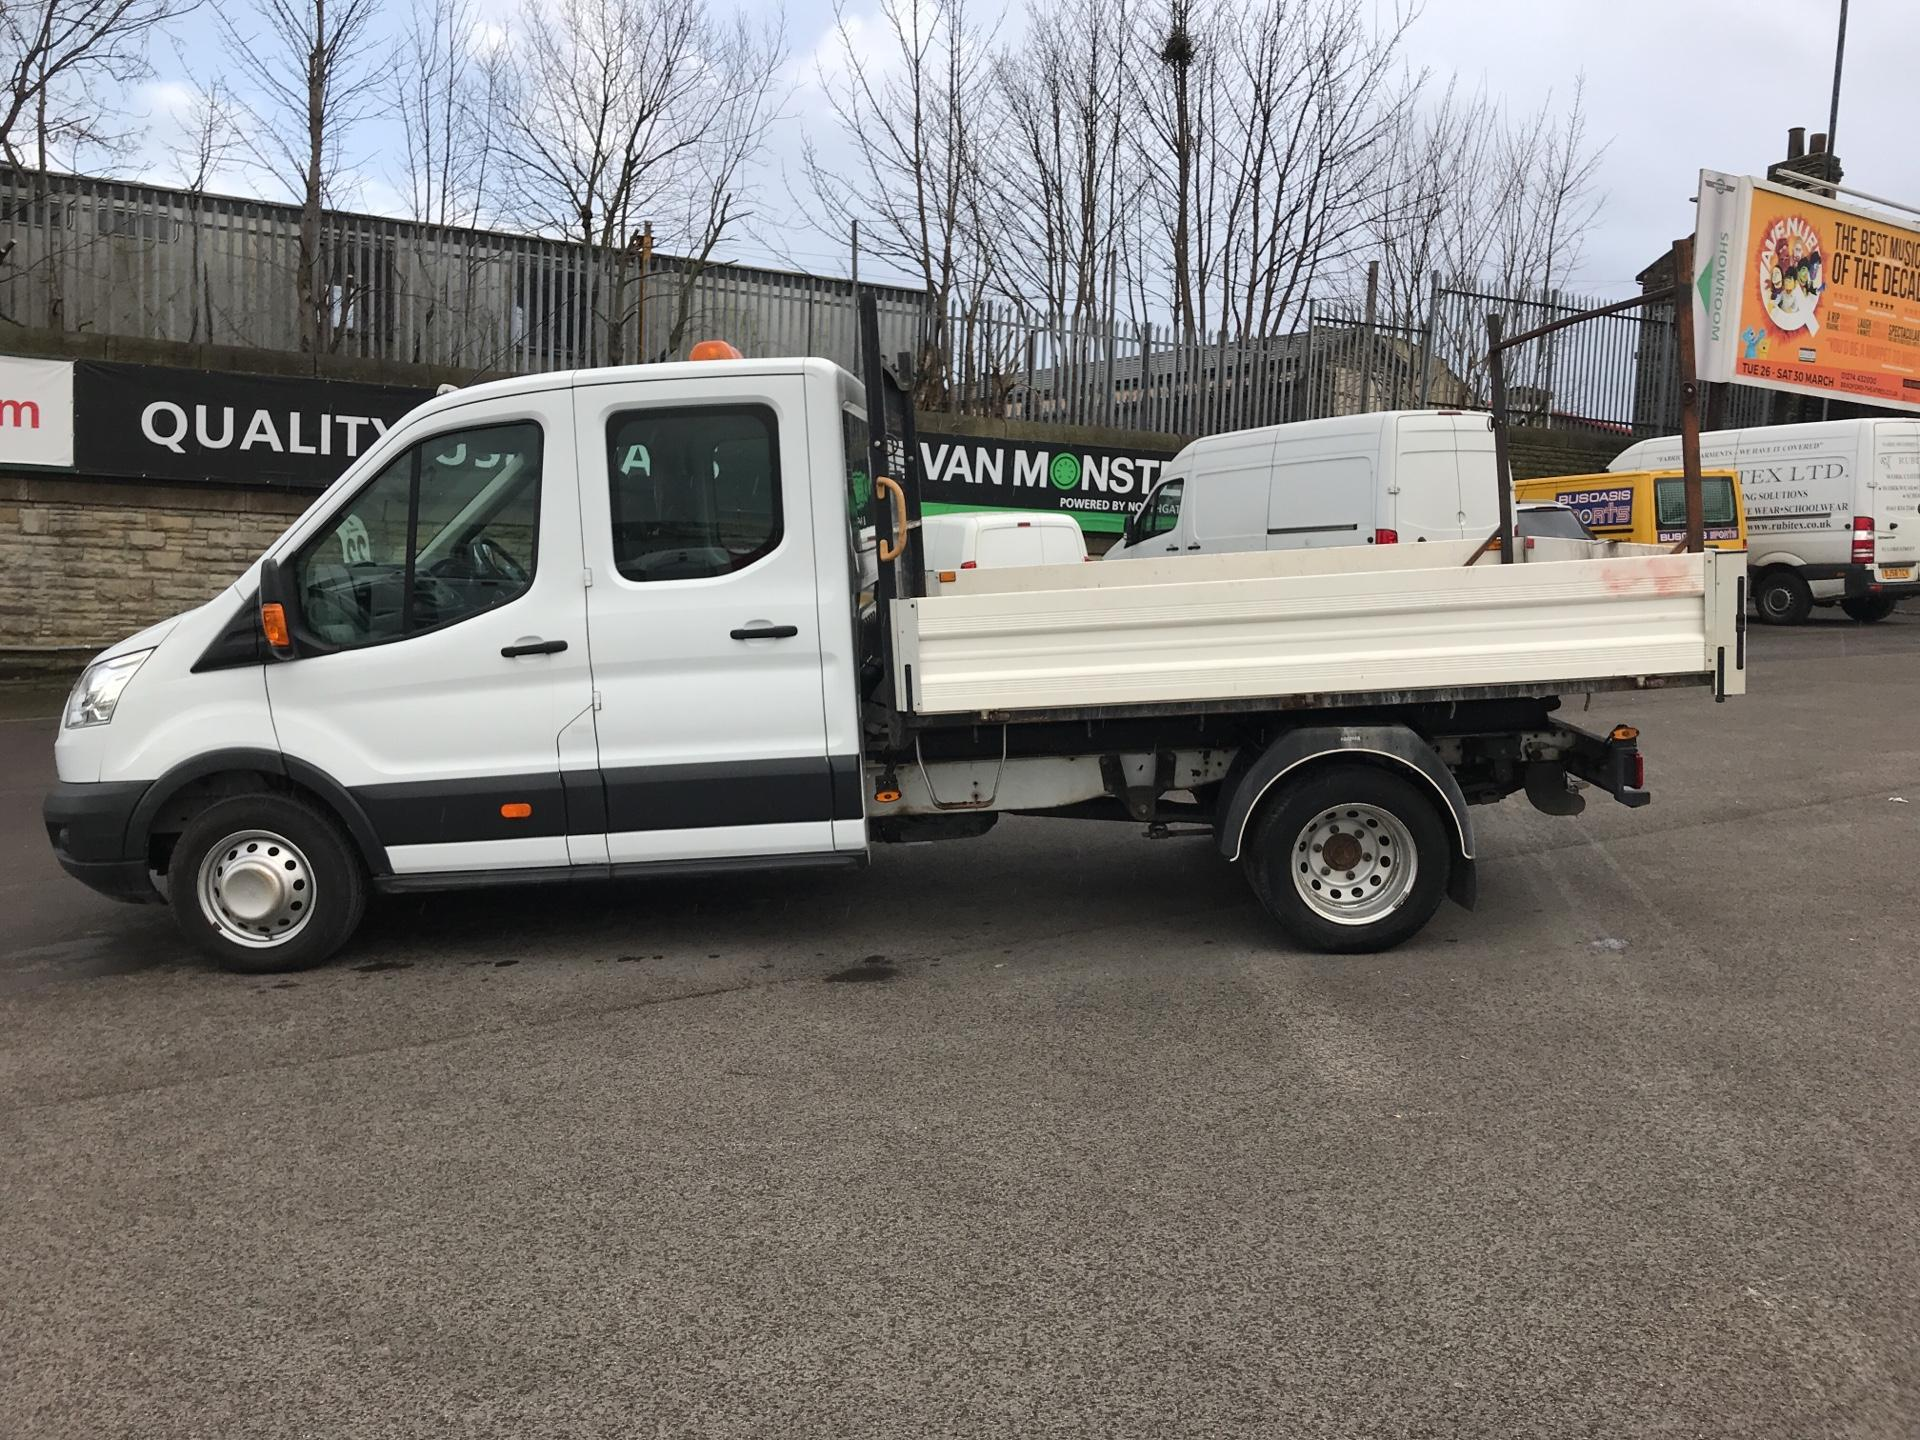 2016 Ford Transit 2.2 TDCI LWB DOUBLE CAB TIPPER EURO 5  (FG16LKY) Image 6